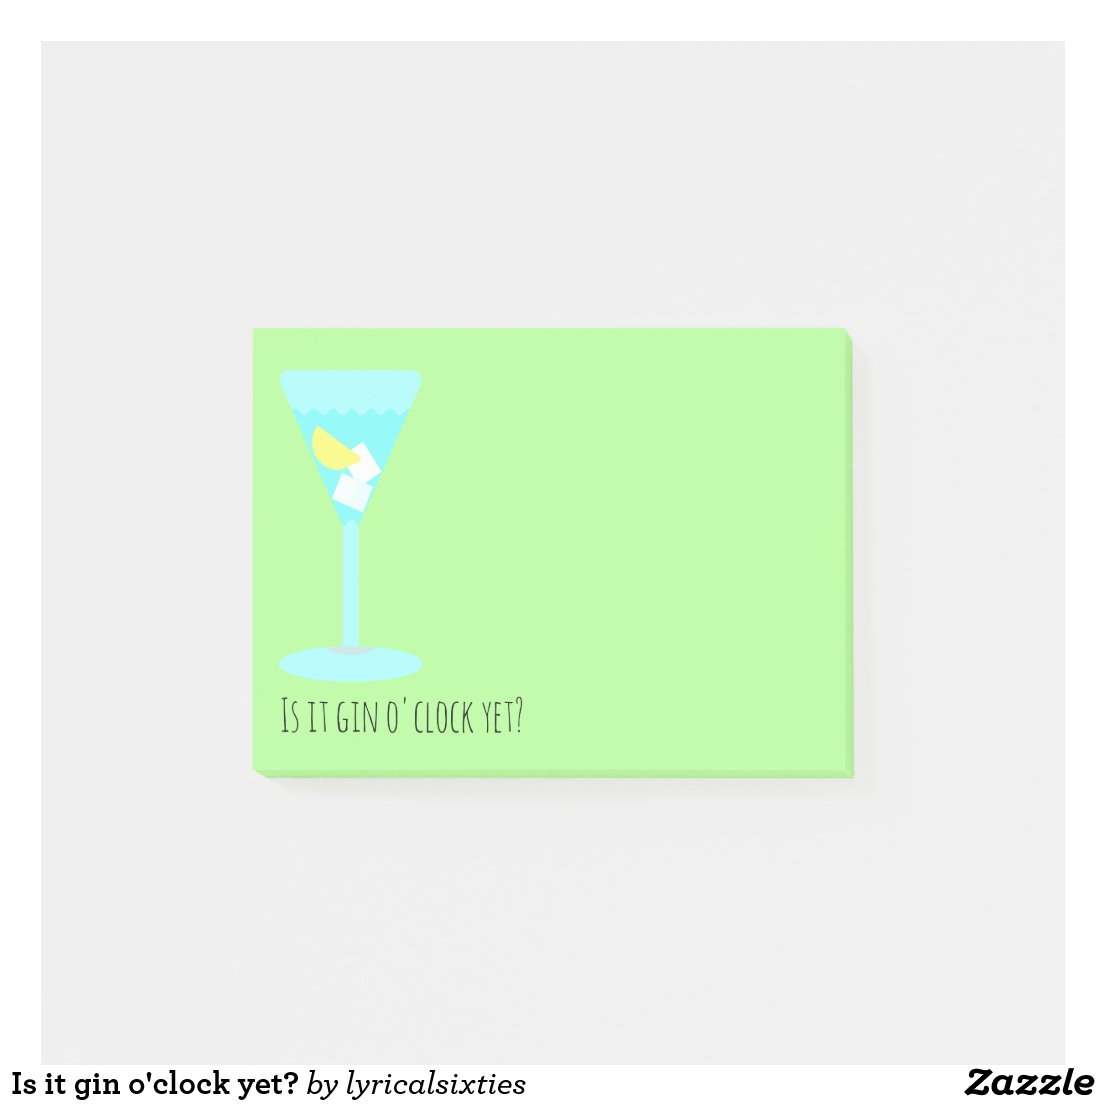 Is it gin o'clock yet? post-it notes